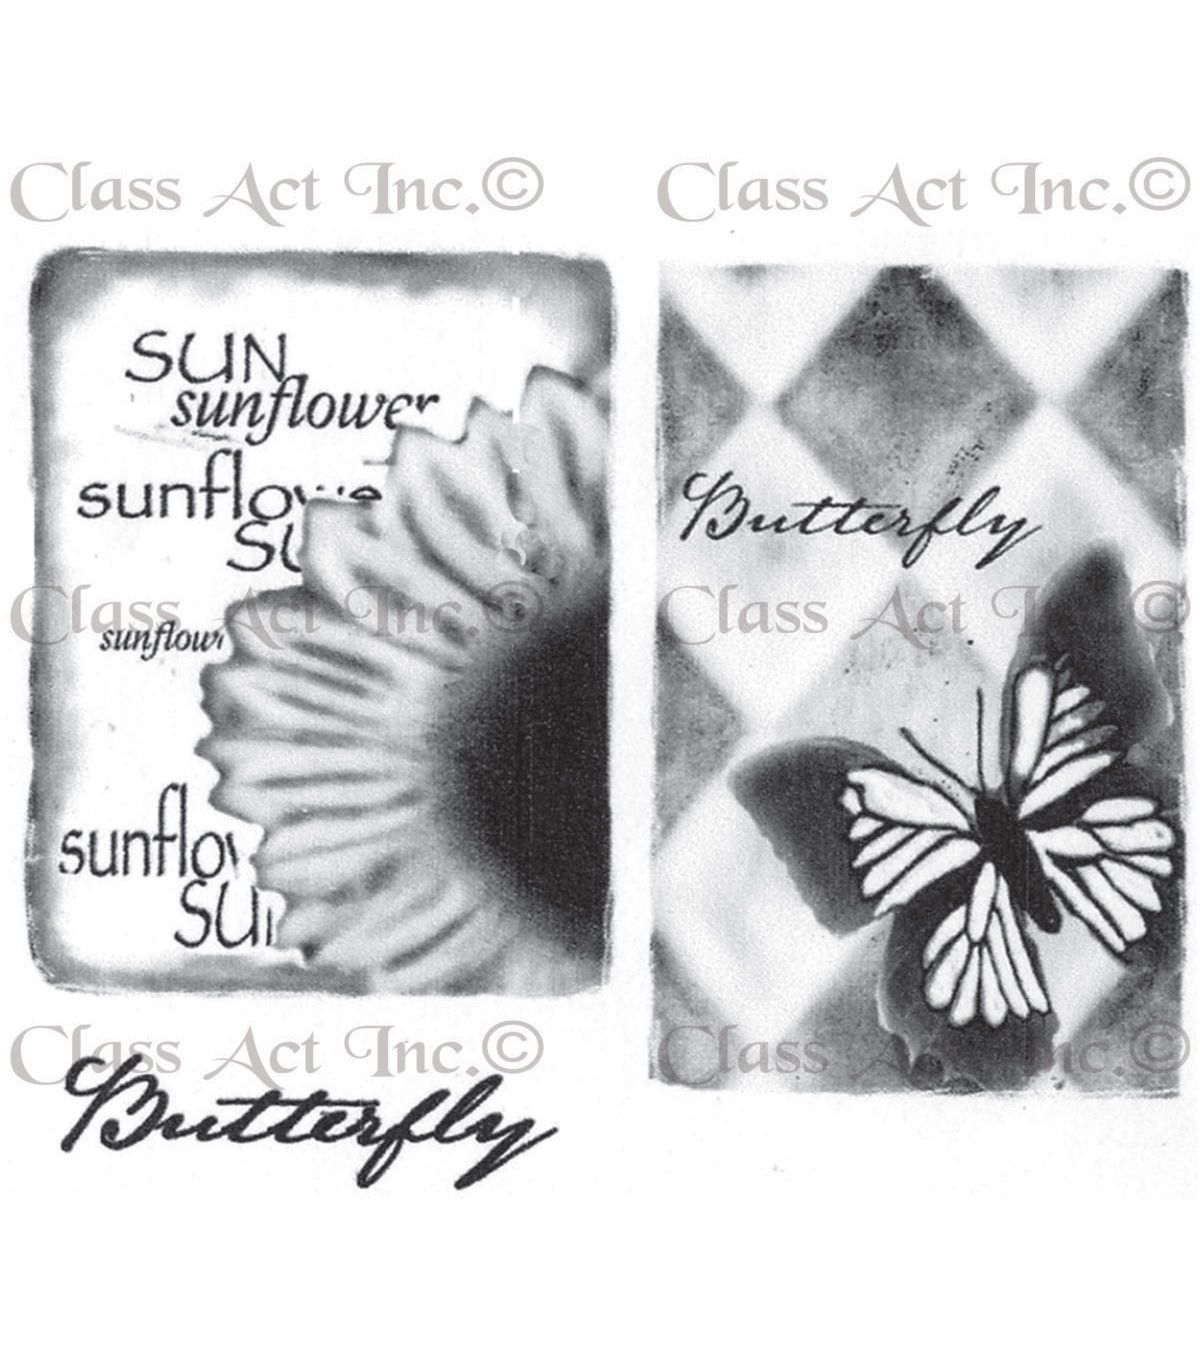 Class Act Chapel Road Cling Mounted Rubber Stamp Set Large Artishapes 2